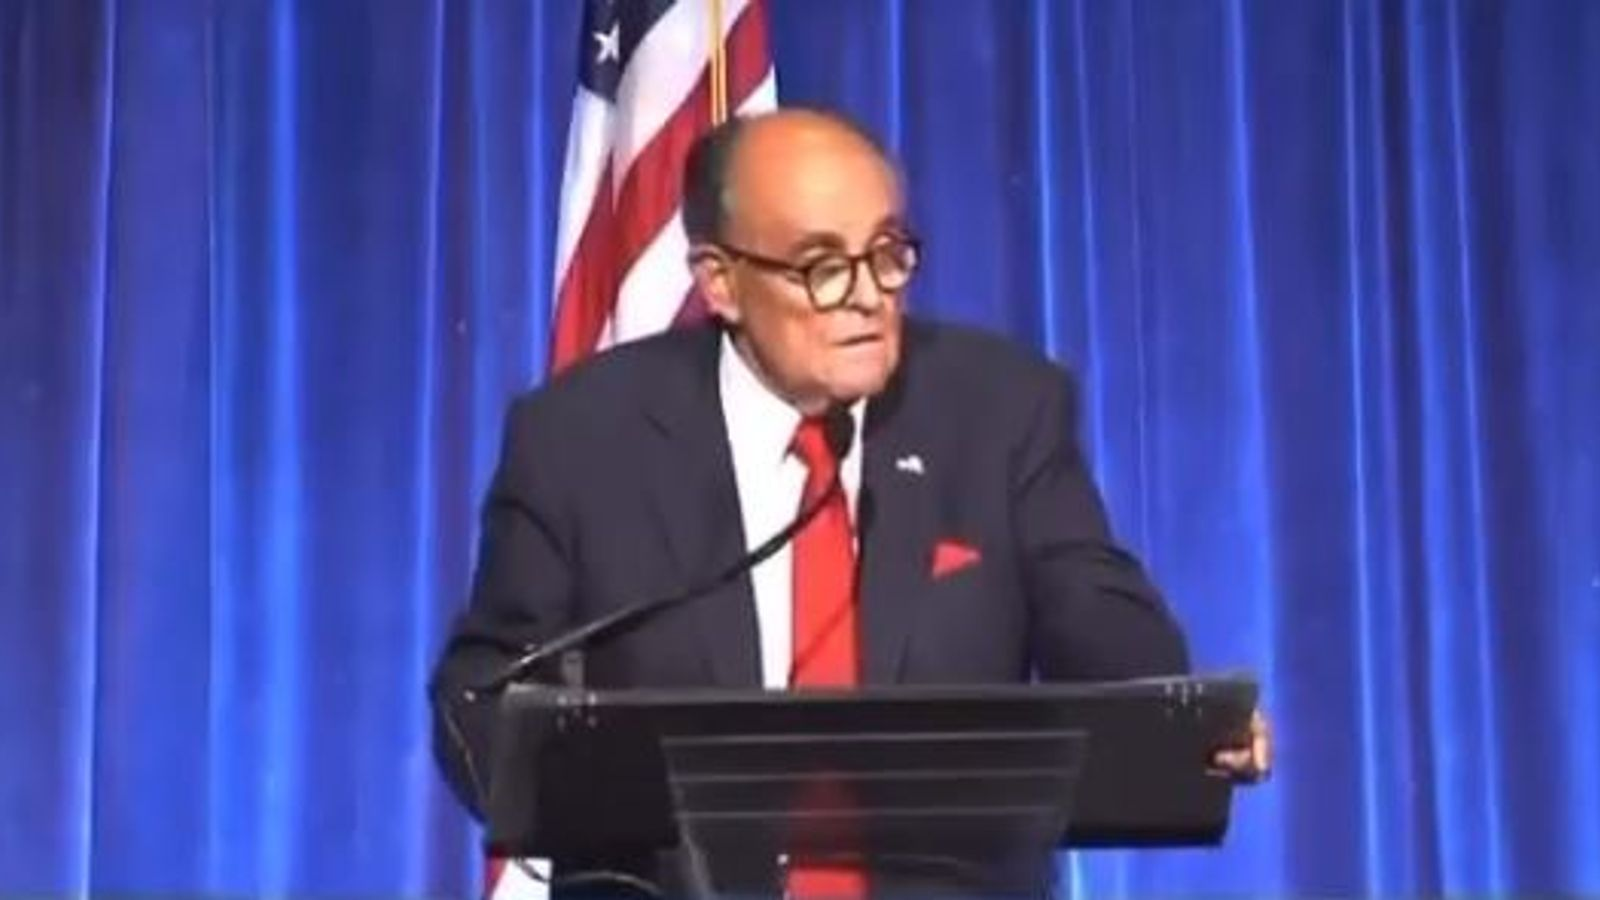 Rudy Giuliani imitates the Queen and denies going out with Prince Andrew in speech at 9/11 dinner